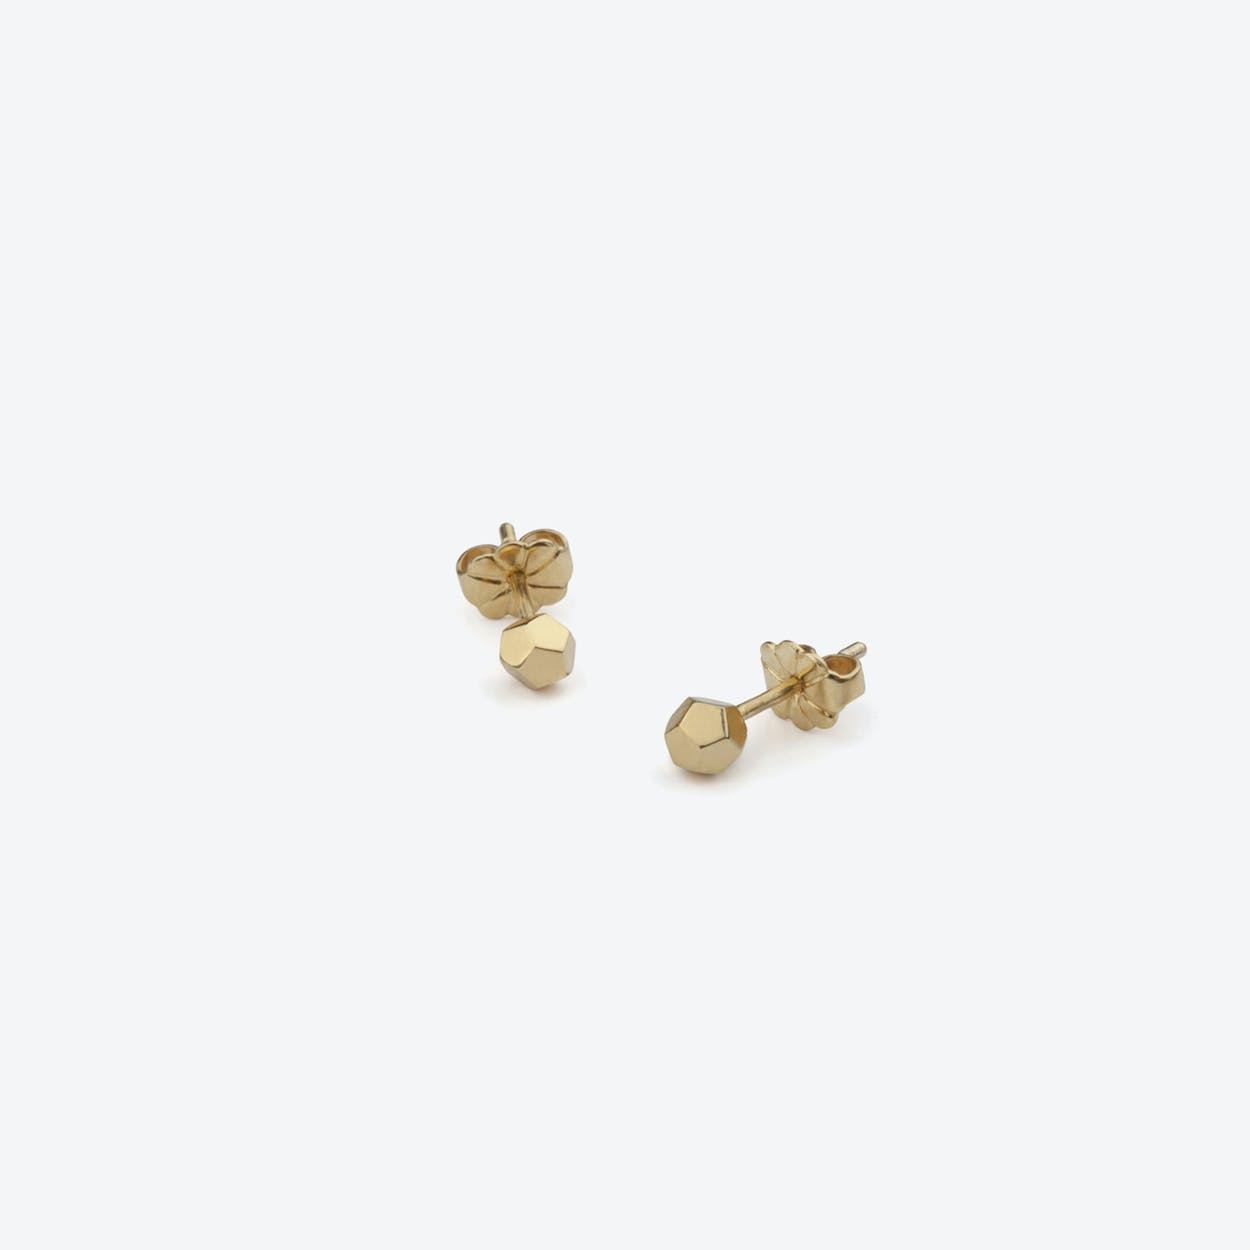 Dodecahedron Stud Earrings in Gold